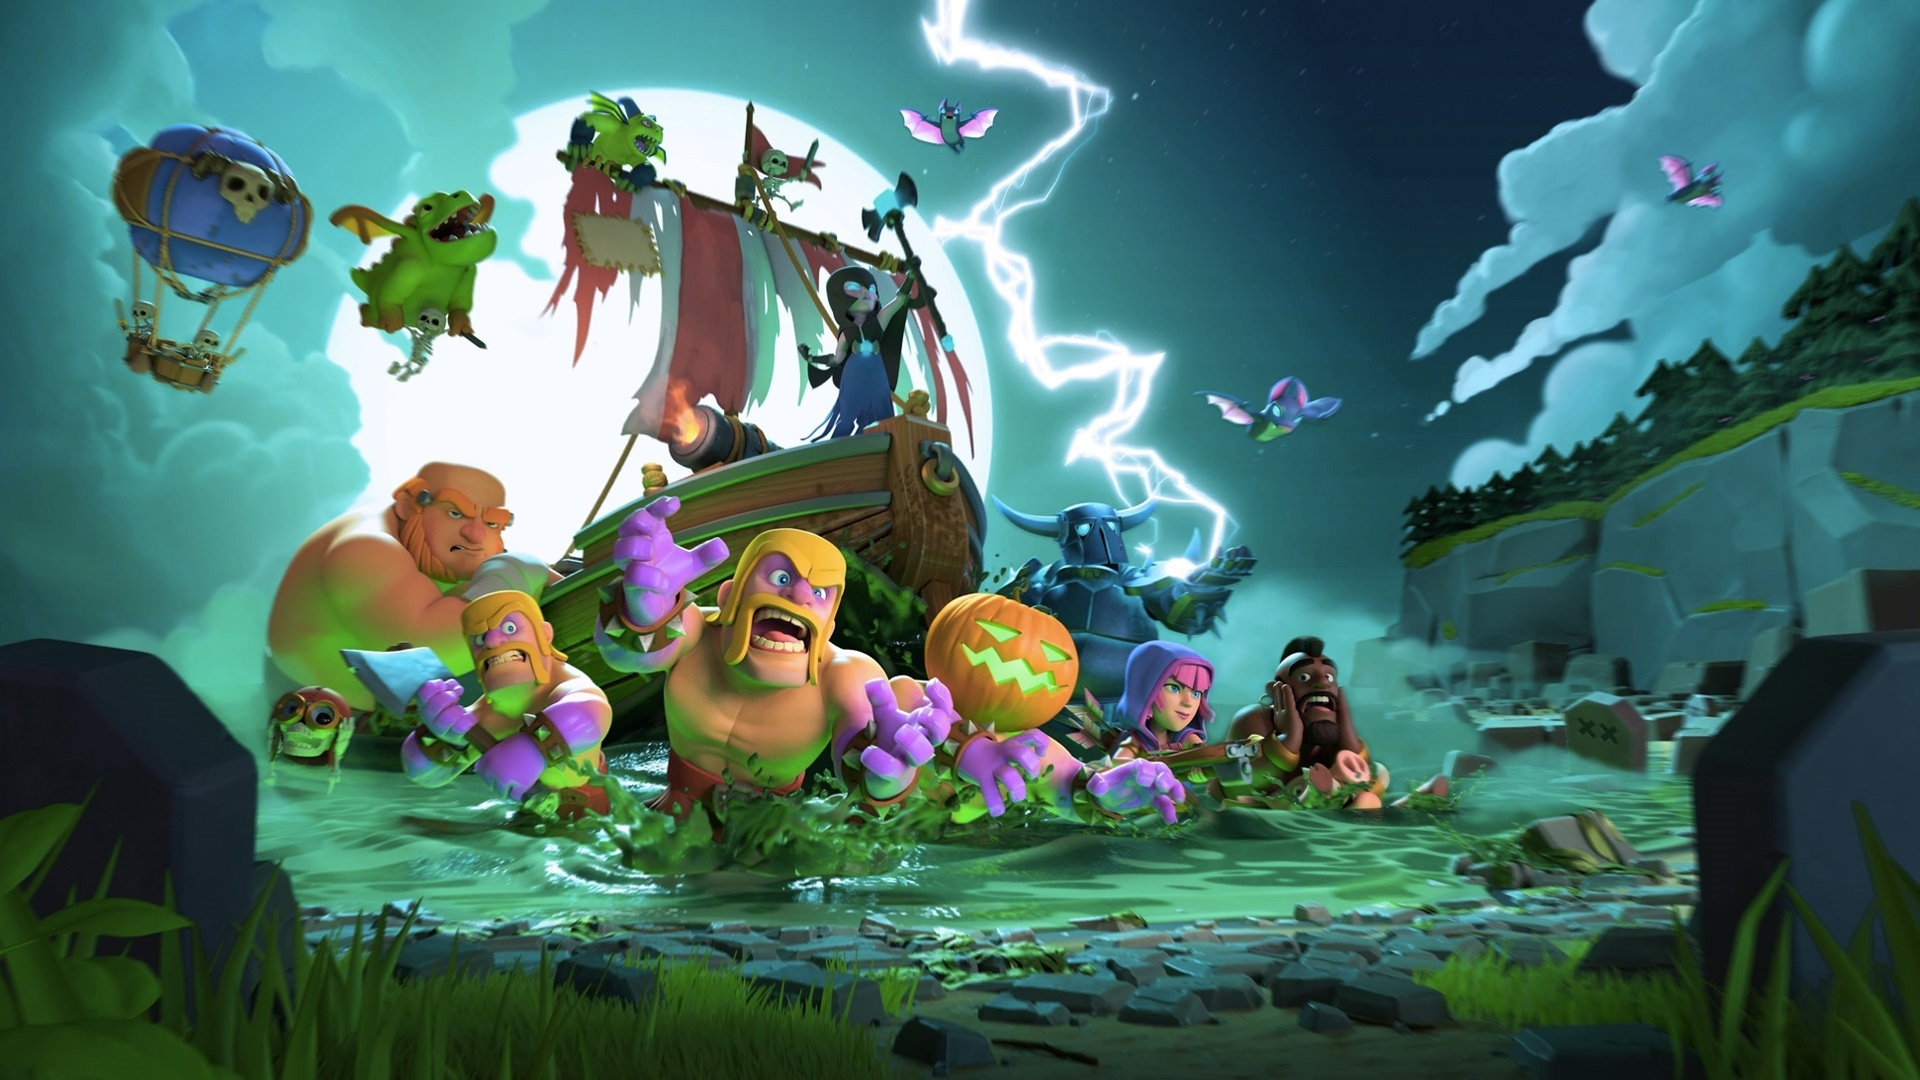 Clash Of Clans desktop wallpaper free download